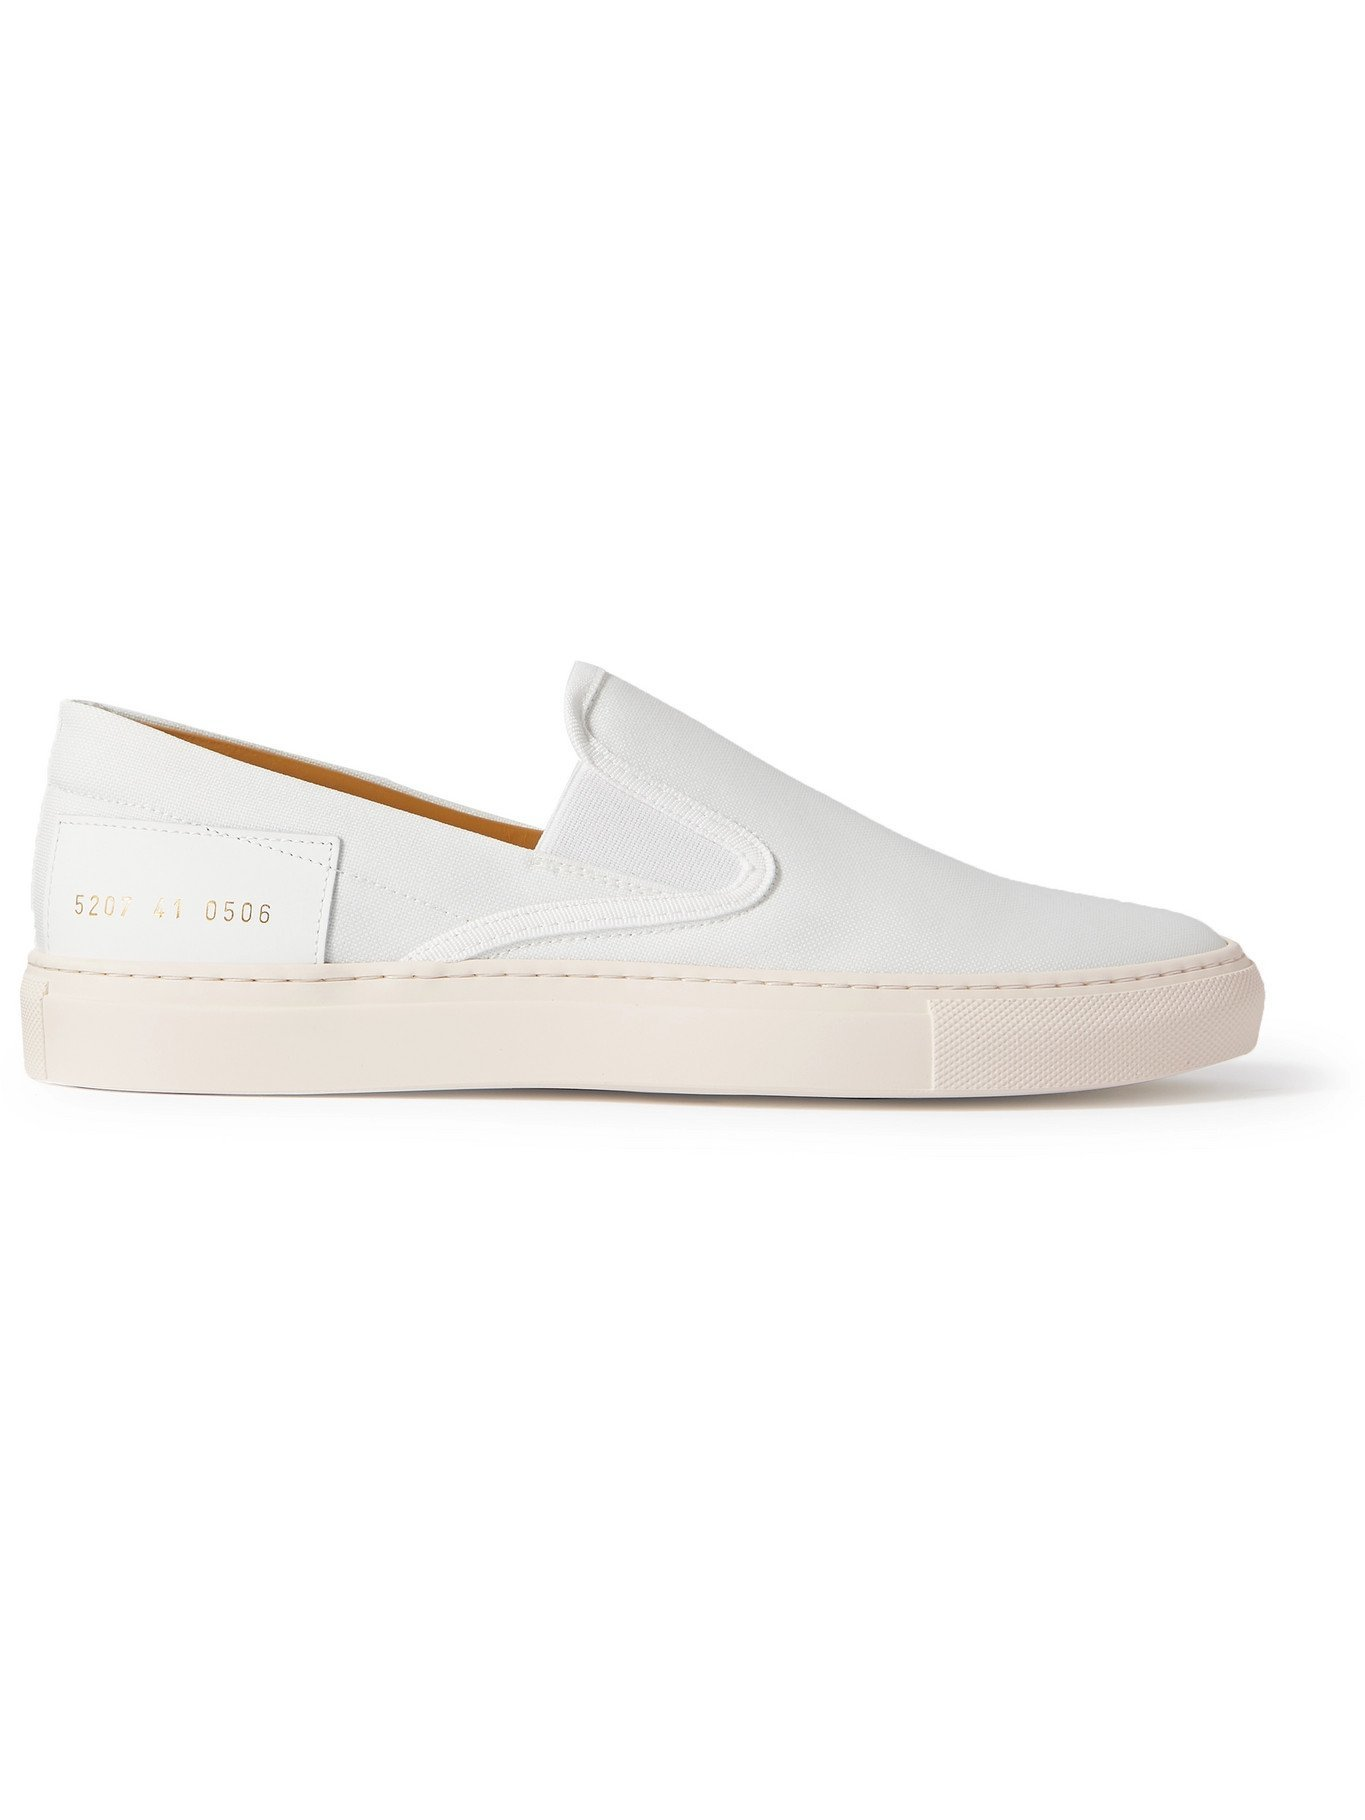 Photo: COMMON PROJECTS - Leather-Trimmed Nylon Slip-On Sneakers - White